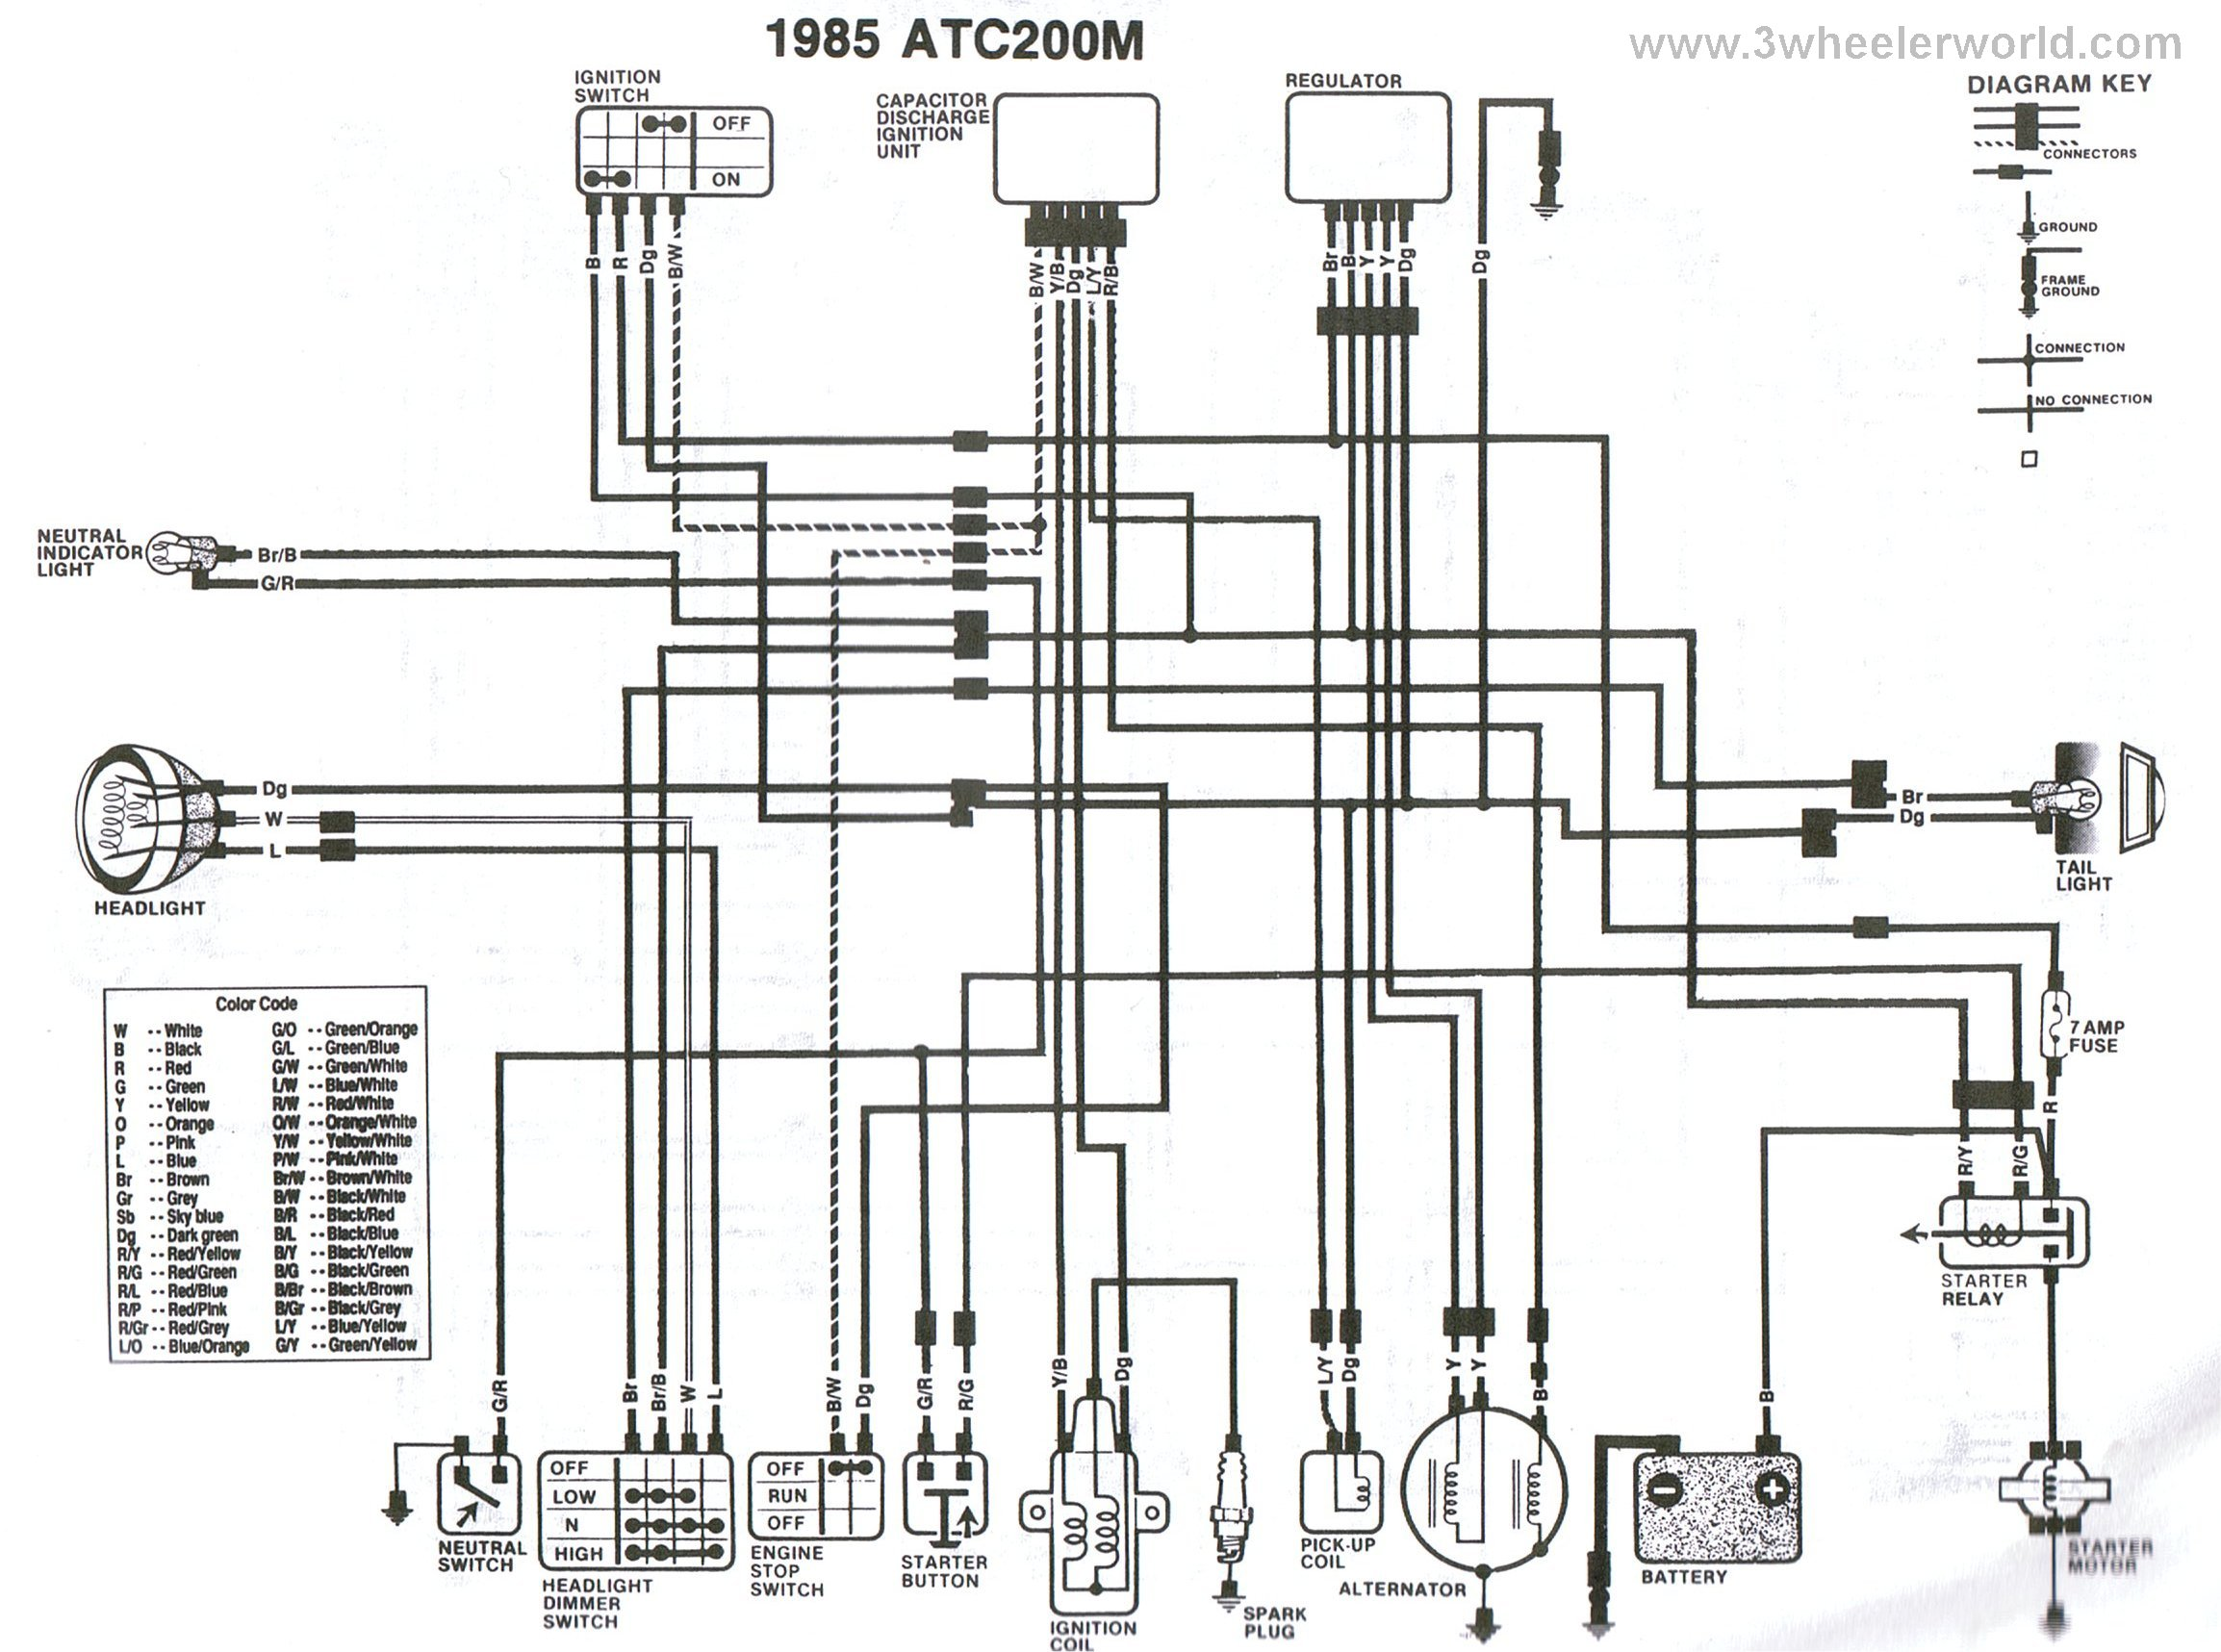 WiringHonda on Porsche 911 Wiring Diagram